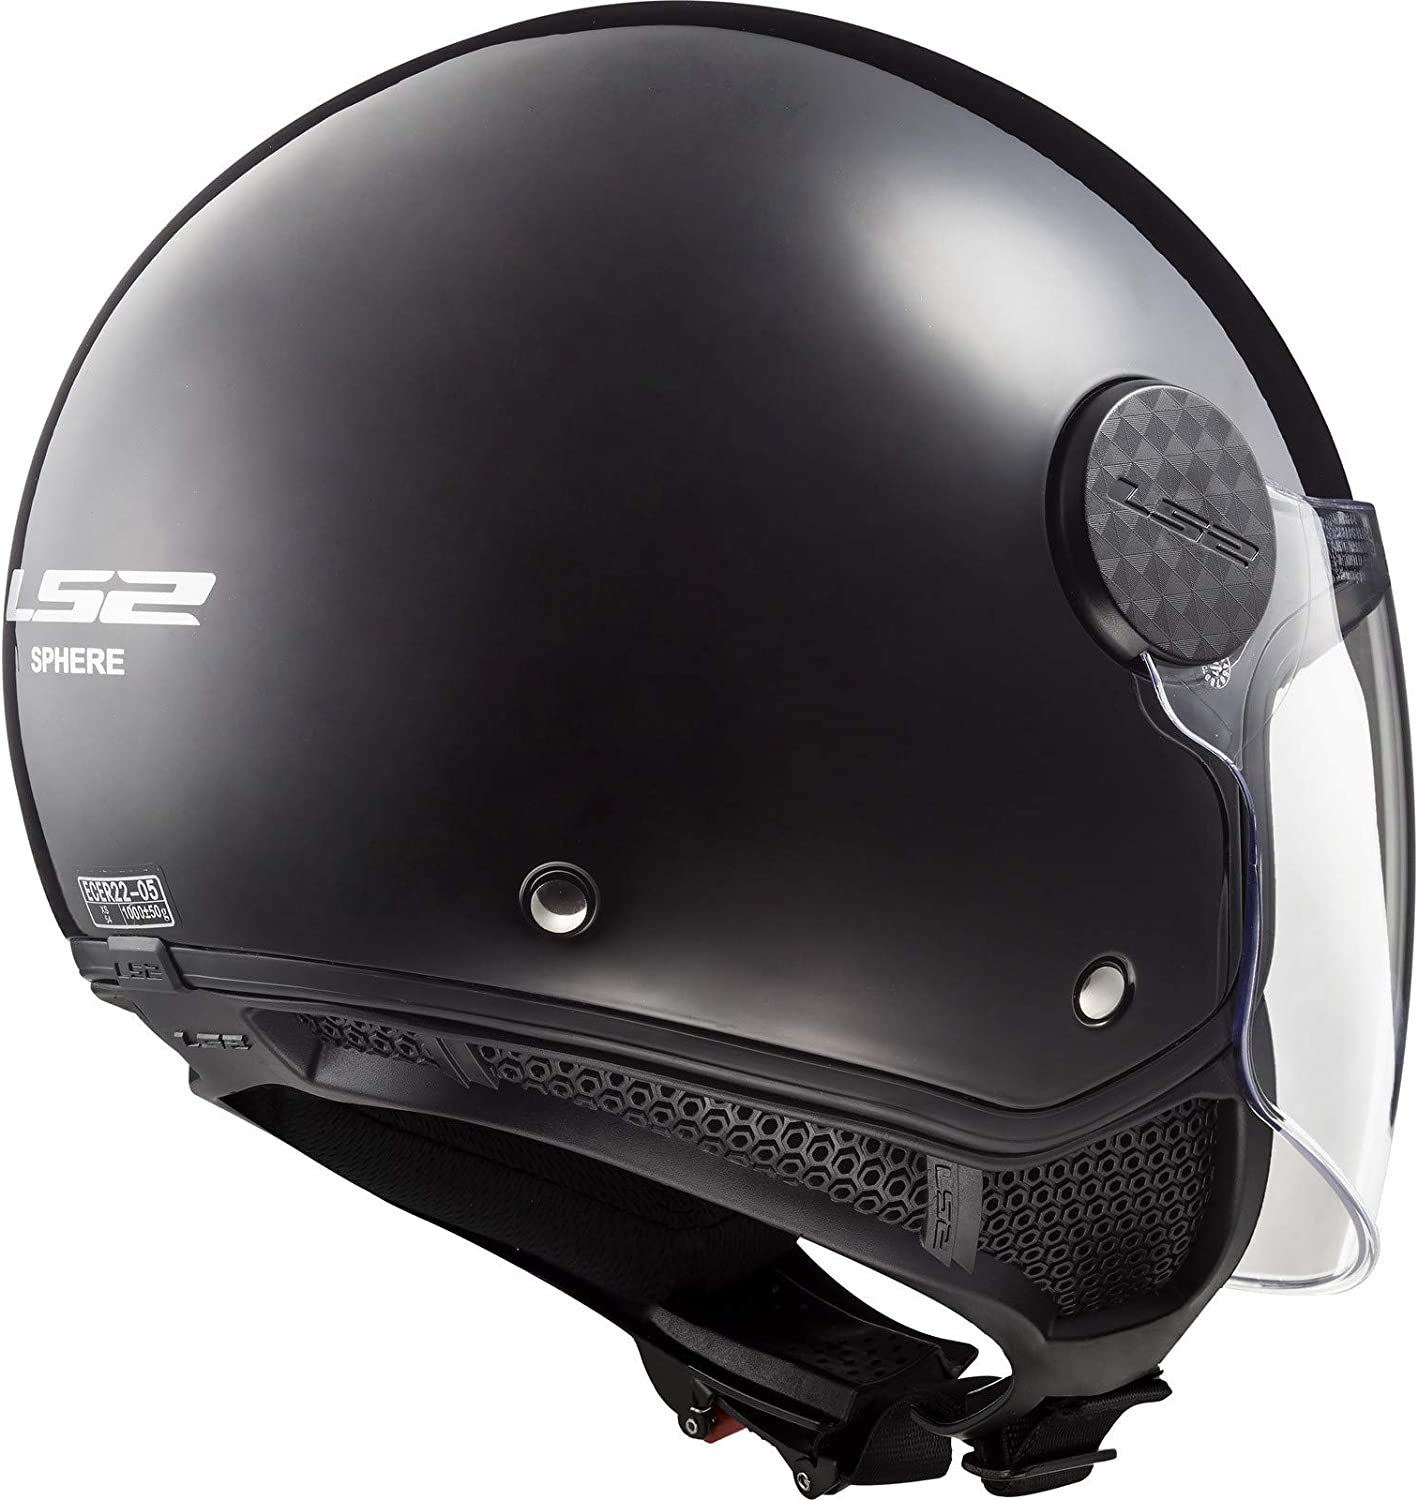 LS2 casque jet Sphere blanc Taille XS